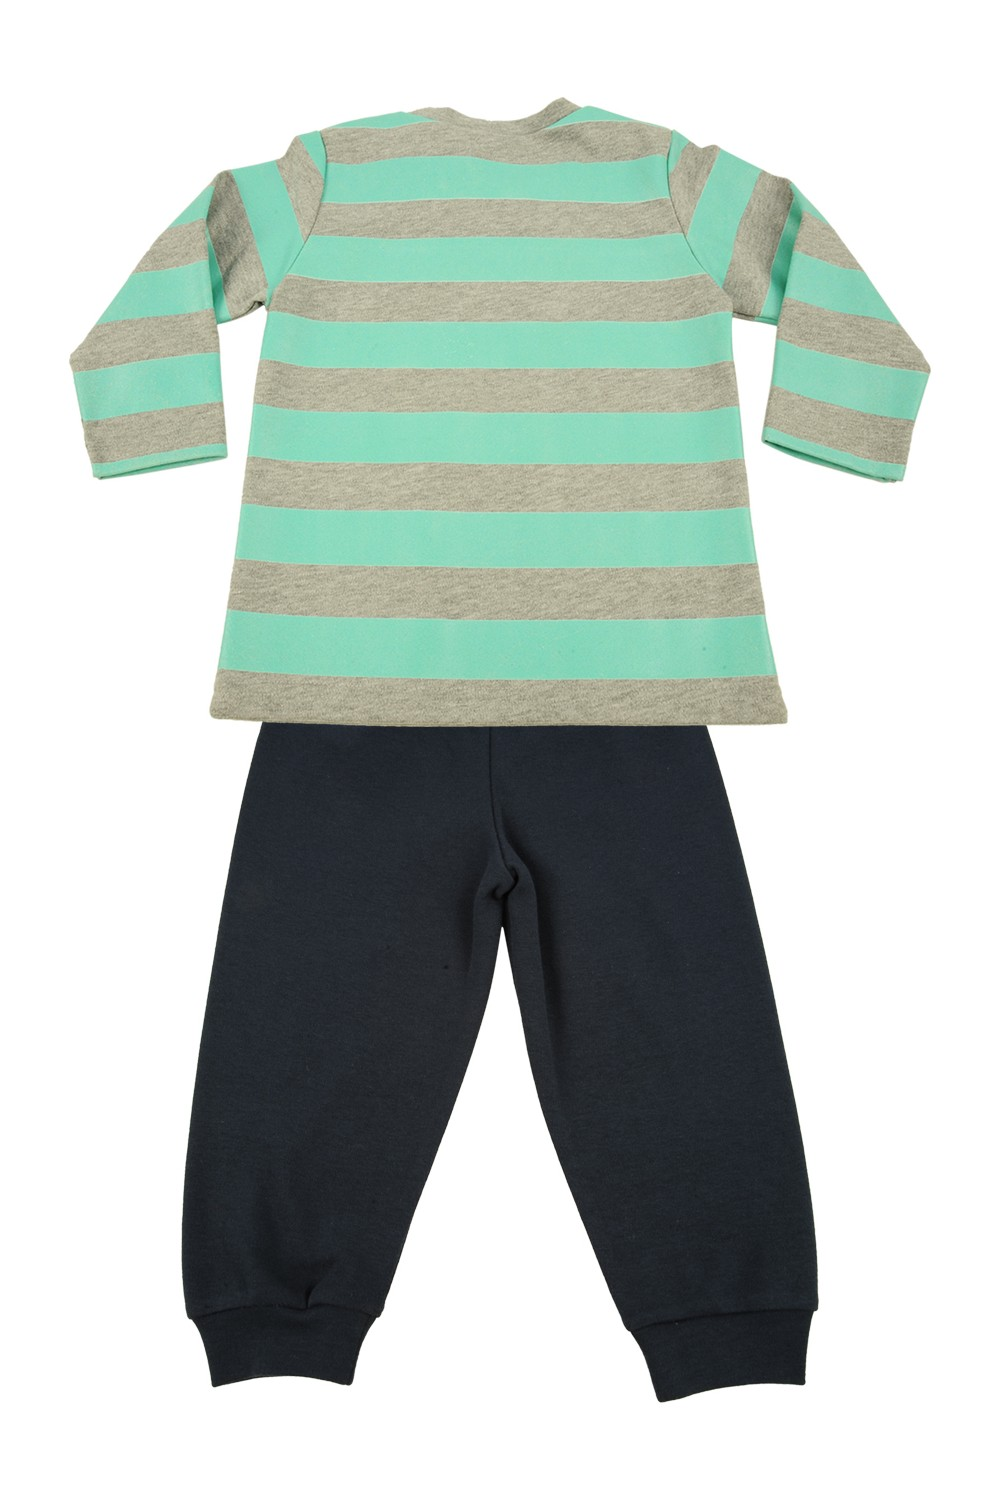 Zeyland Kids' Pajama Set